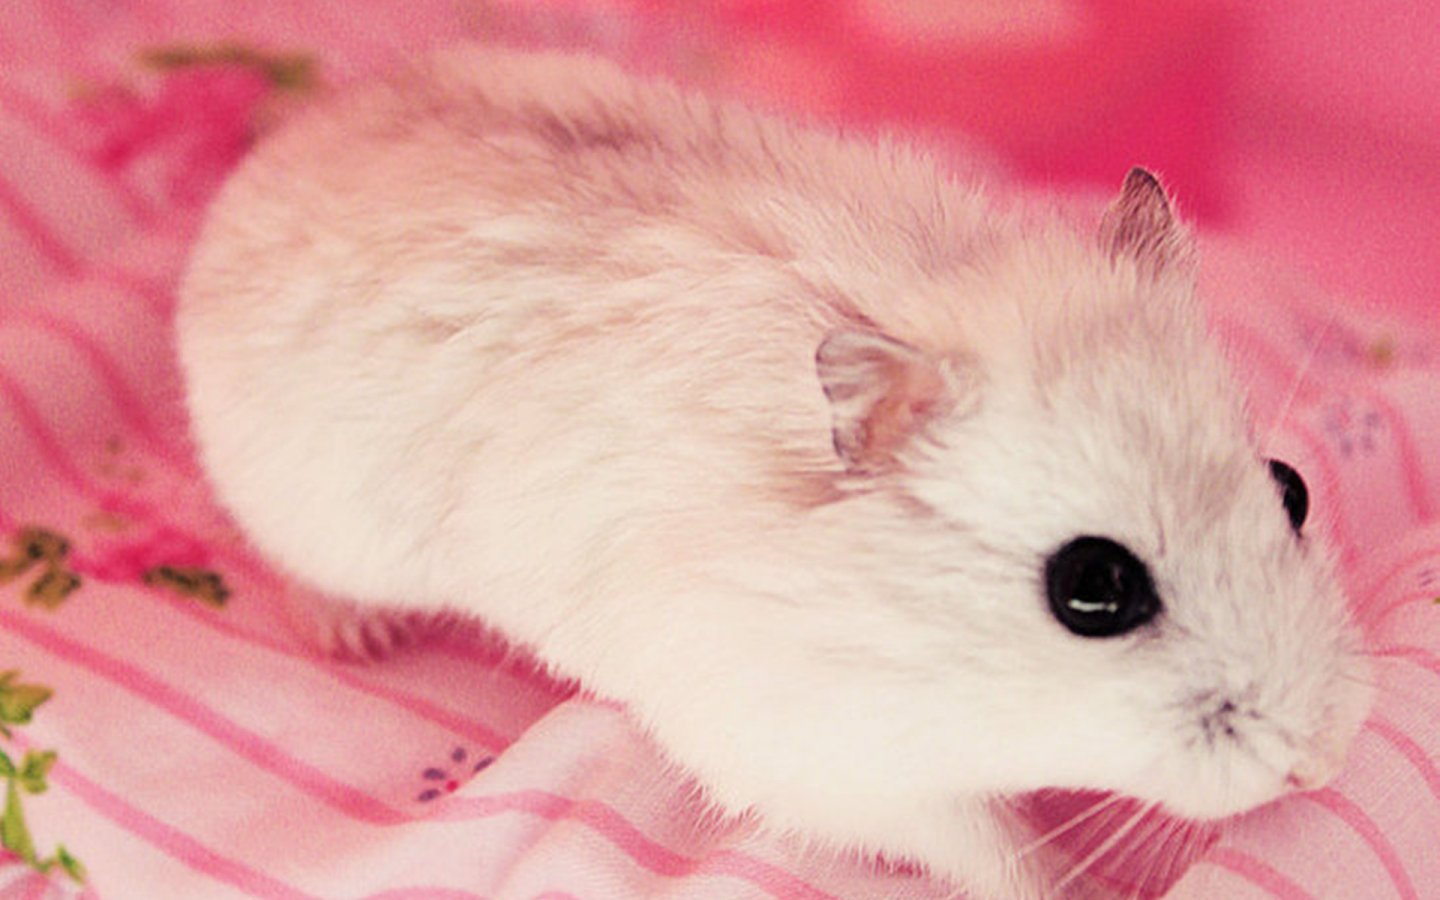 Cute Hamster 1440x900 Wallpapers 1440x900 Wallpapers 1440x900